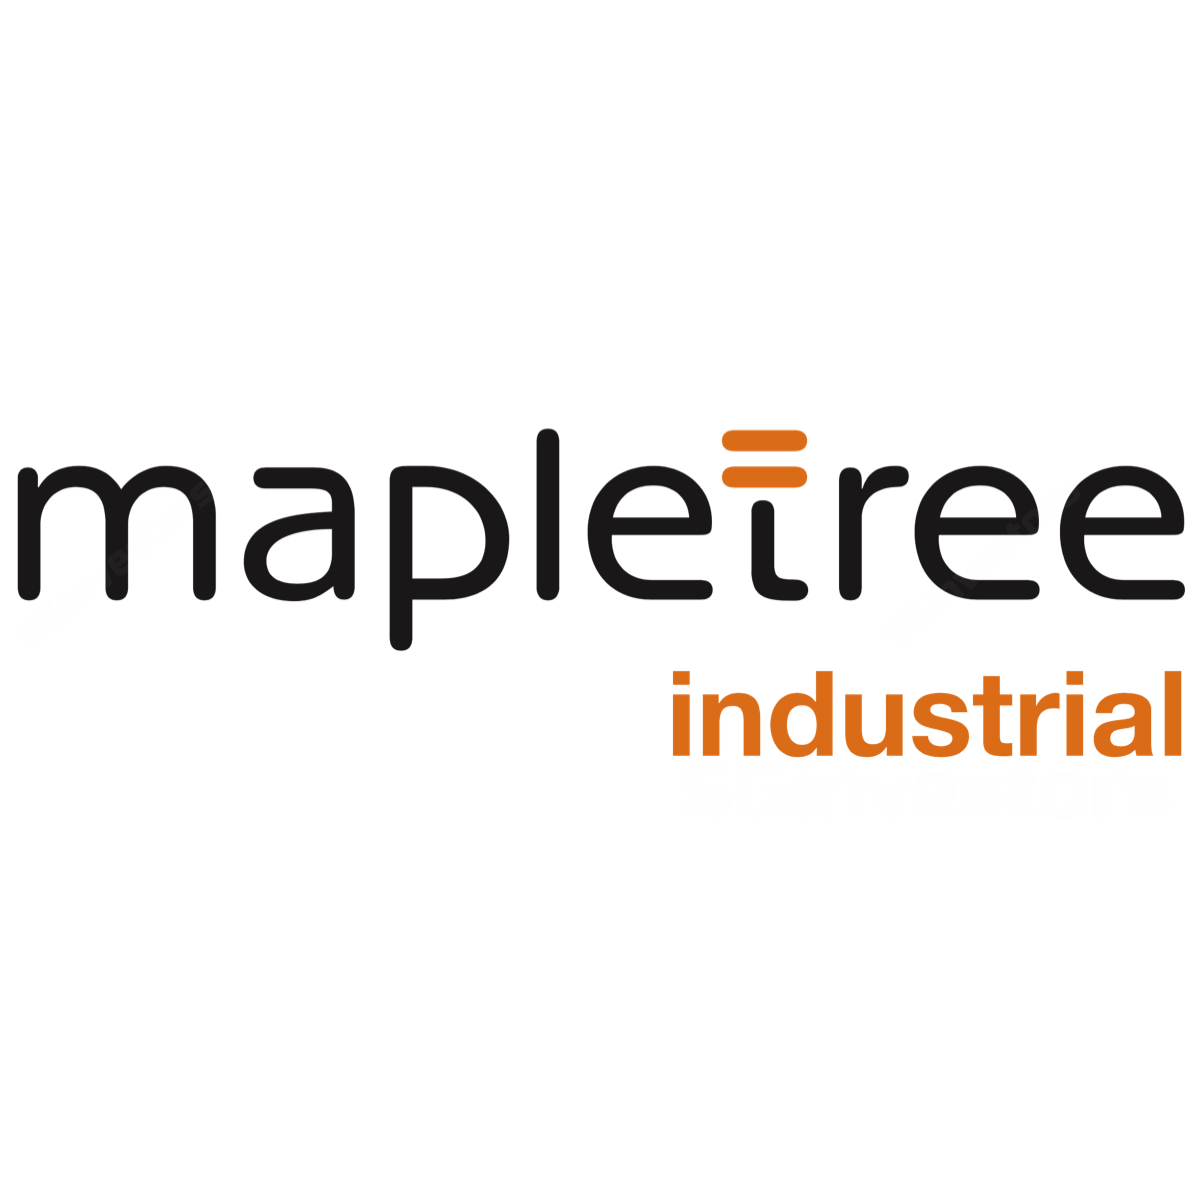 Mapletree Industrial Trust - CIMB Research 2017-07-26: Growth Locked In